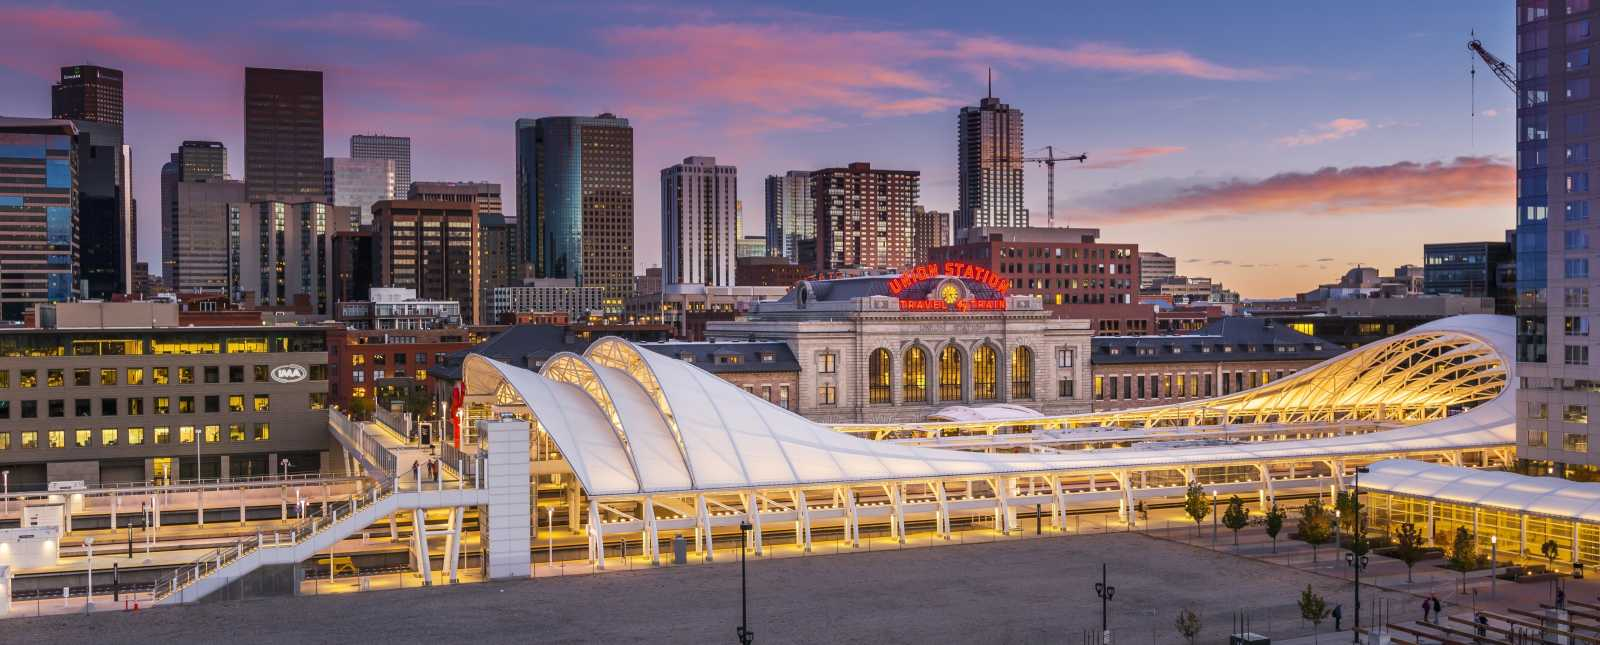 Copy of denver-union-station-rails-skyline-header